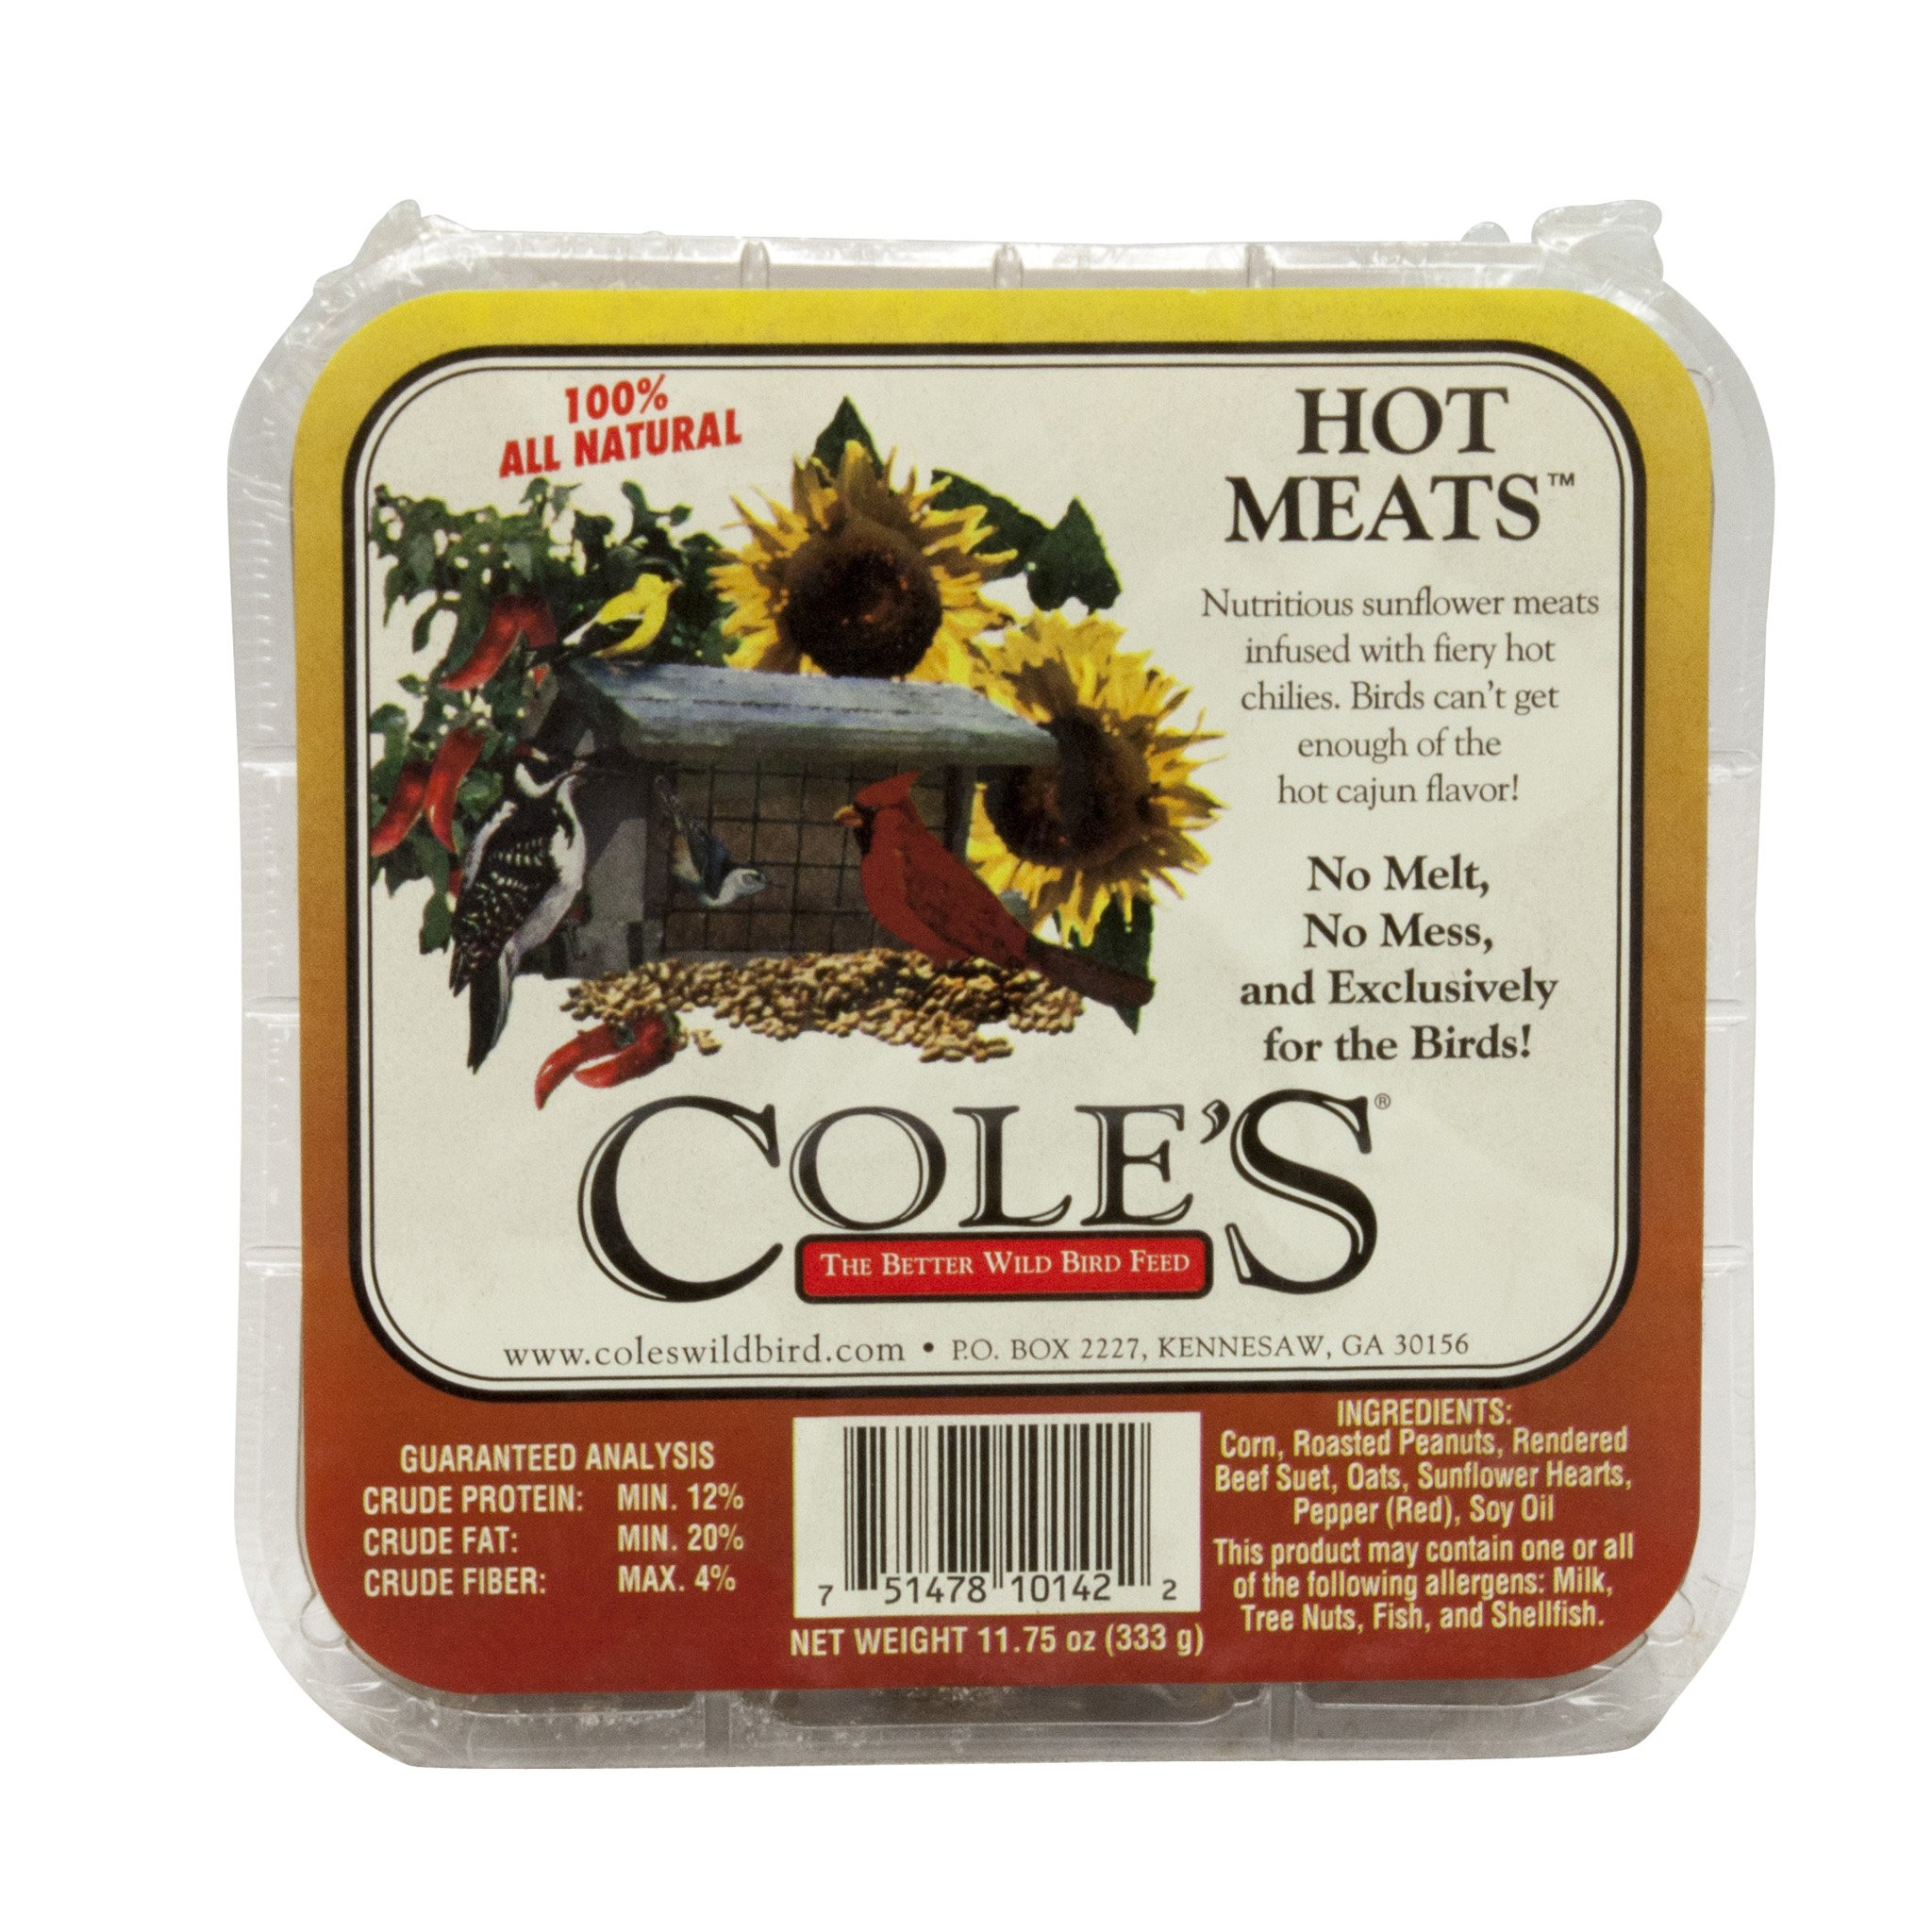 COLES WILD BIRD PRODUCTS INC 751478101422 Coles Wild Bird Products Hmsu 11.75 Ounce Hot Meats Suet-Quantity 12 by COLES WILD BIRD PRODUCTS INC